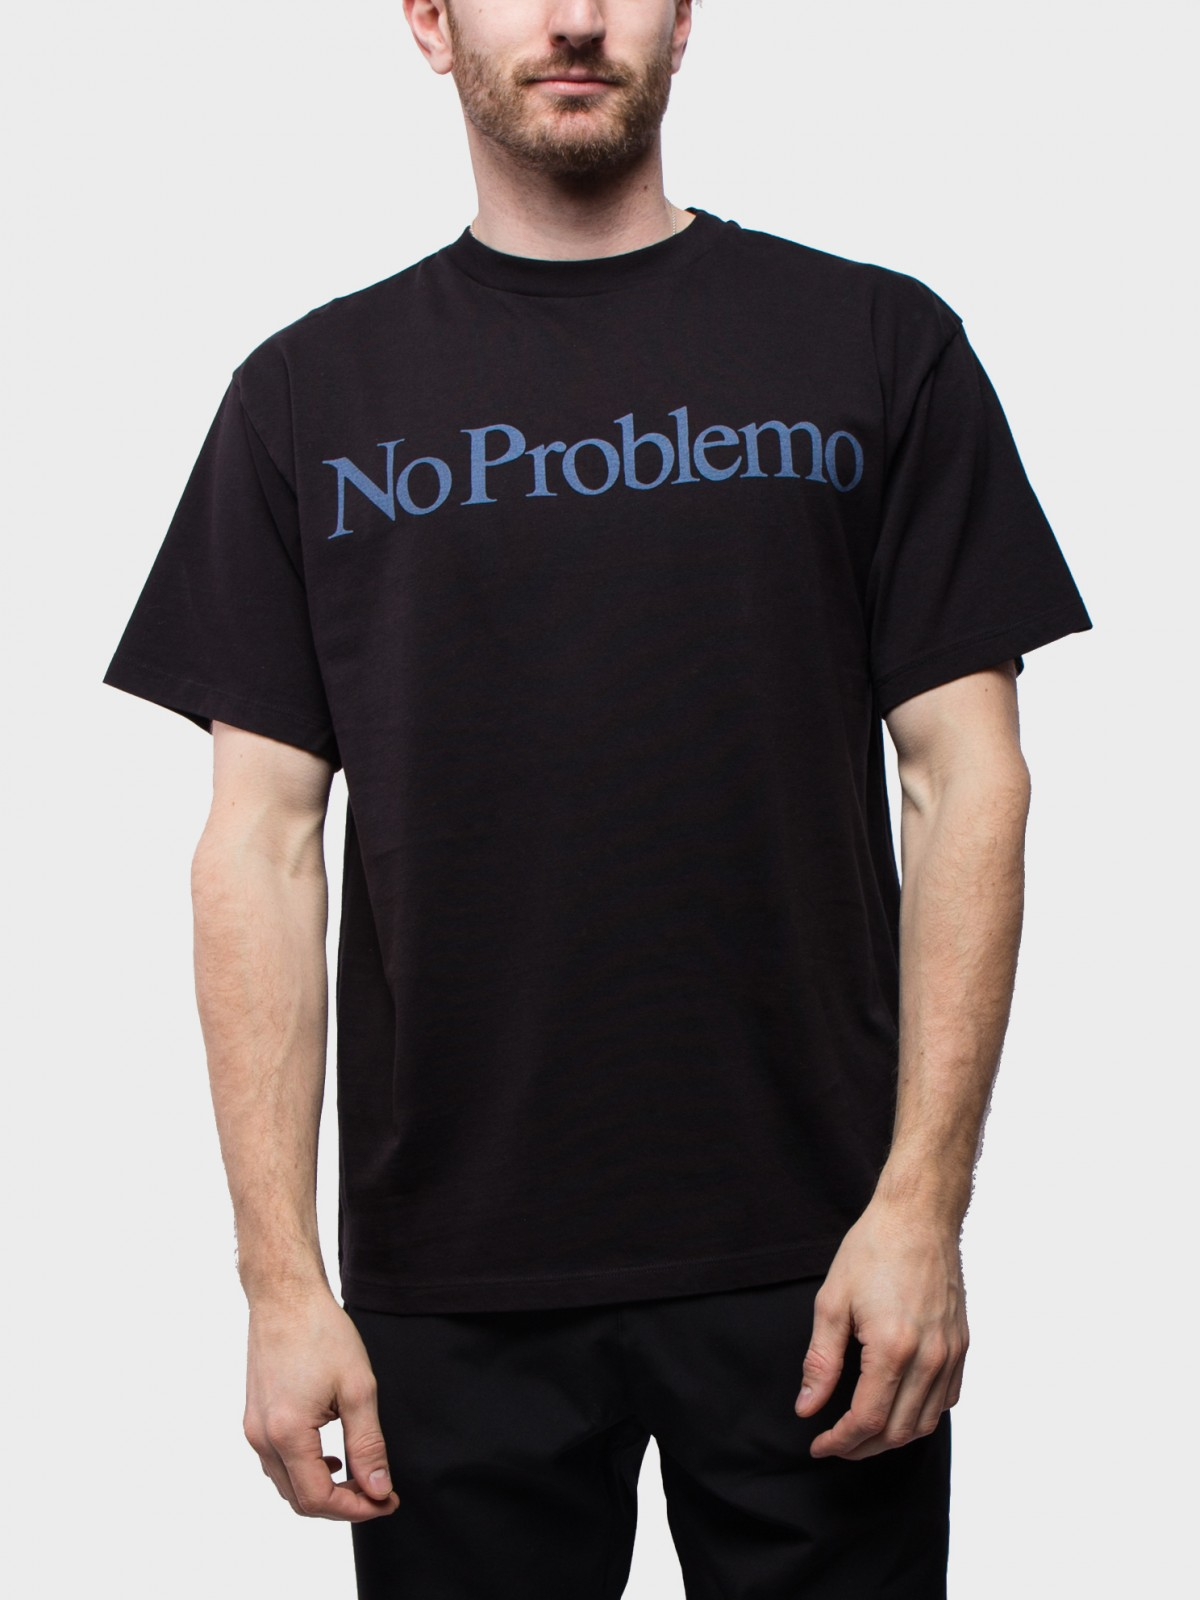 Aries Arise No Problemo SS T-Shirt in Black